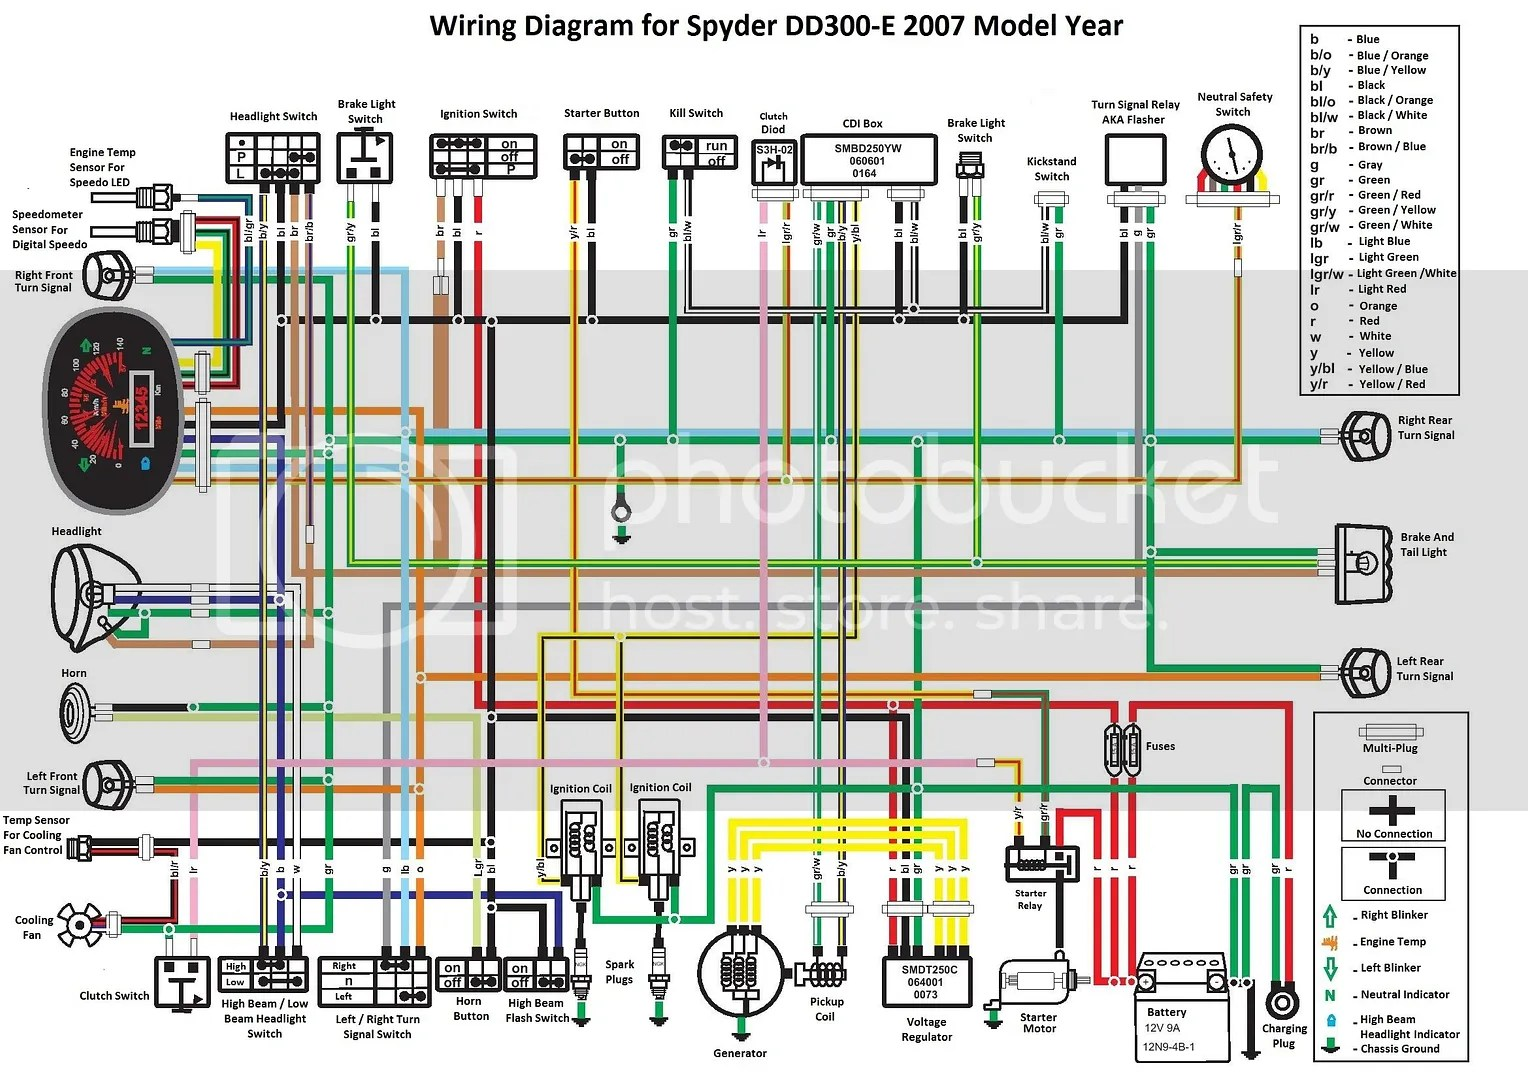 NEWWIRINGDIAGRAM page 001 1?resize=665%2C470 yamaha virago 250 wiring diagram the best wiring diagram 2017 yamaha virago 250 wiring diagram at bakdesigns.co